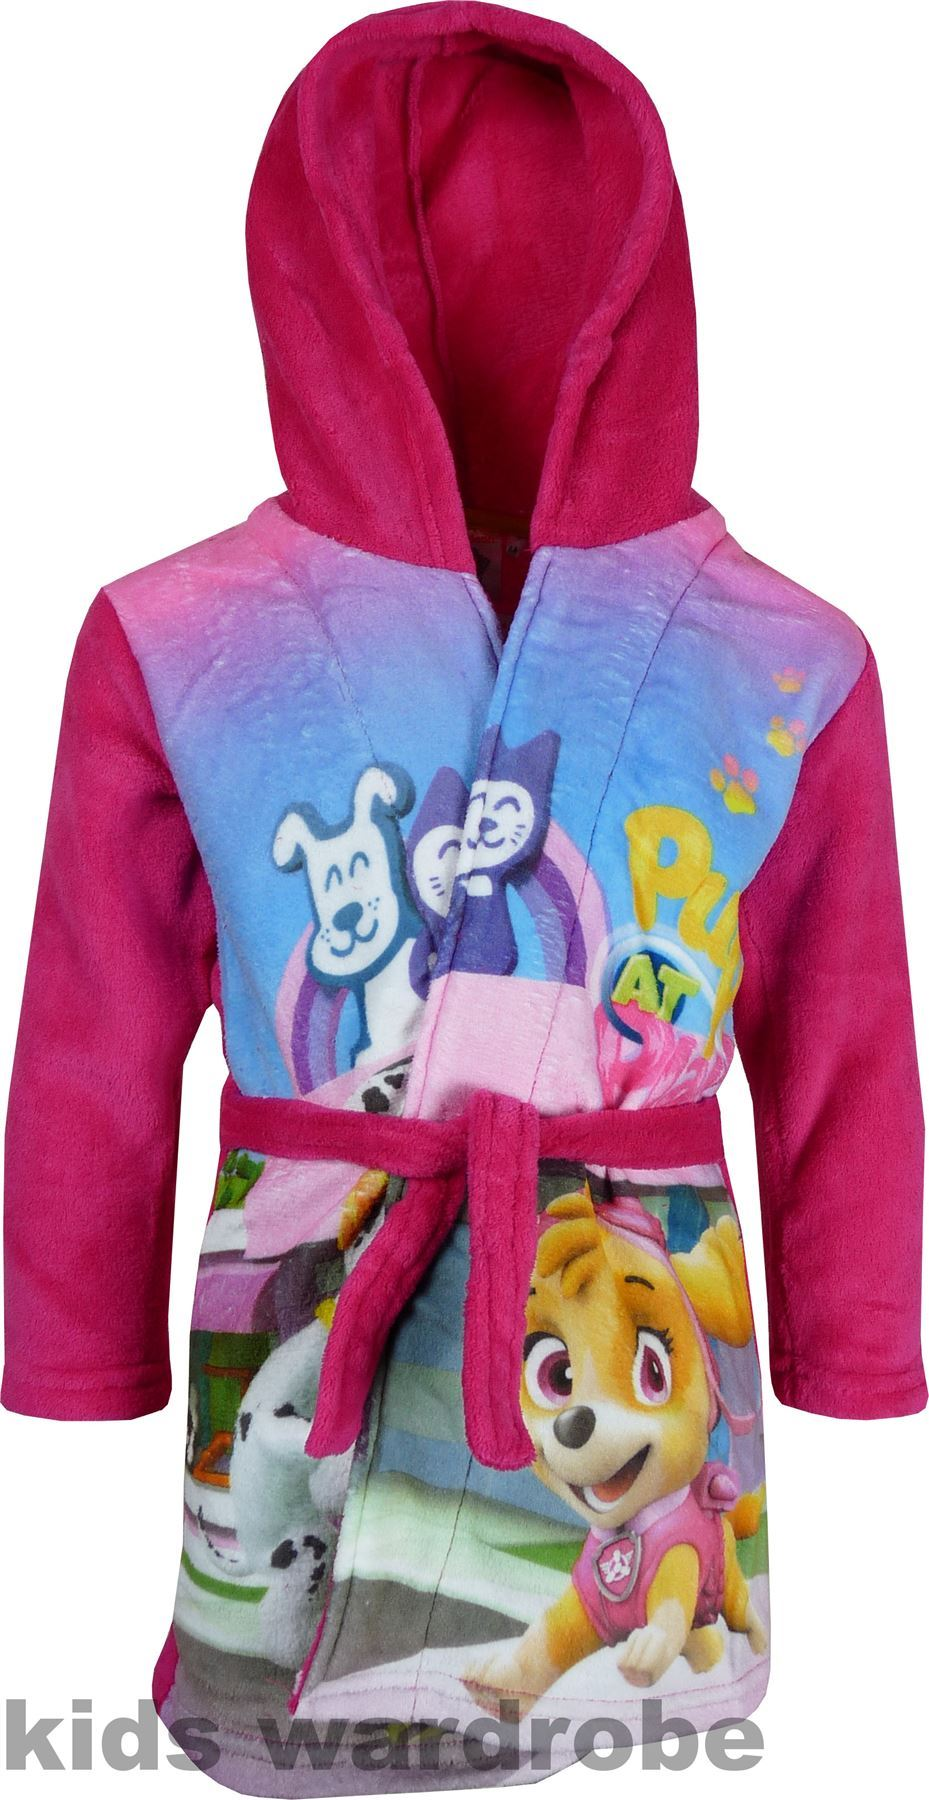 Girls DHQ2100 Paw Patrol Fleece Hooded Dressing Gown   Robe Size  3-6  Years  Picture 2 of 2 75e7da755